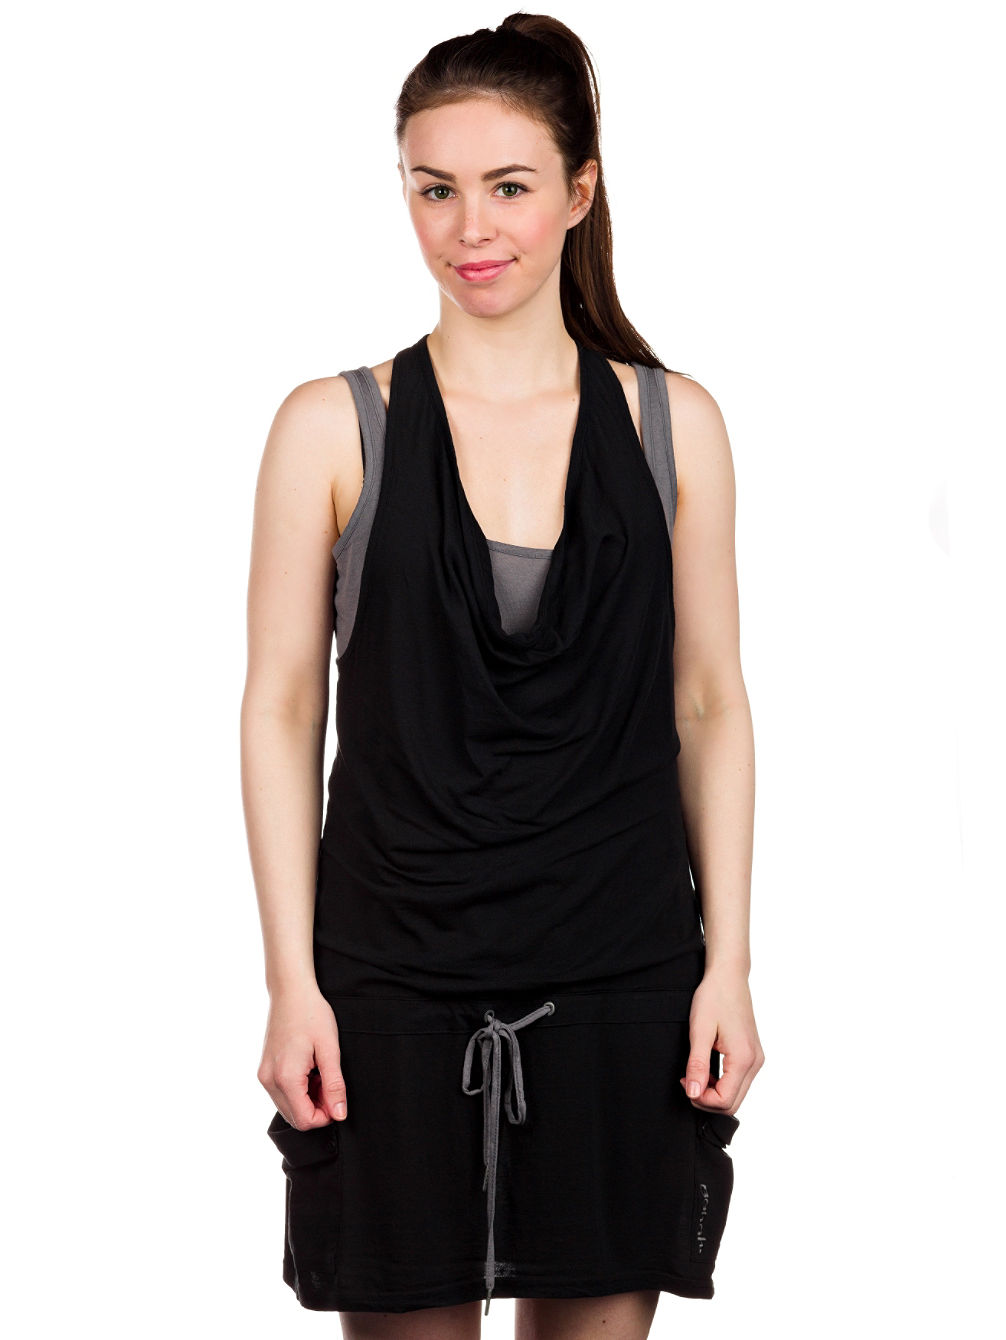 Abbot Dress Women